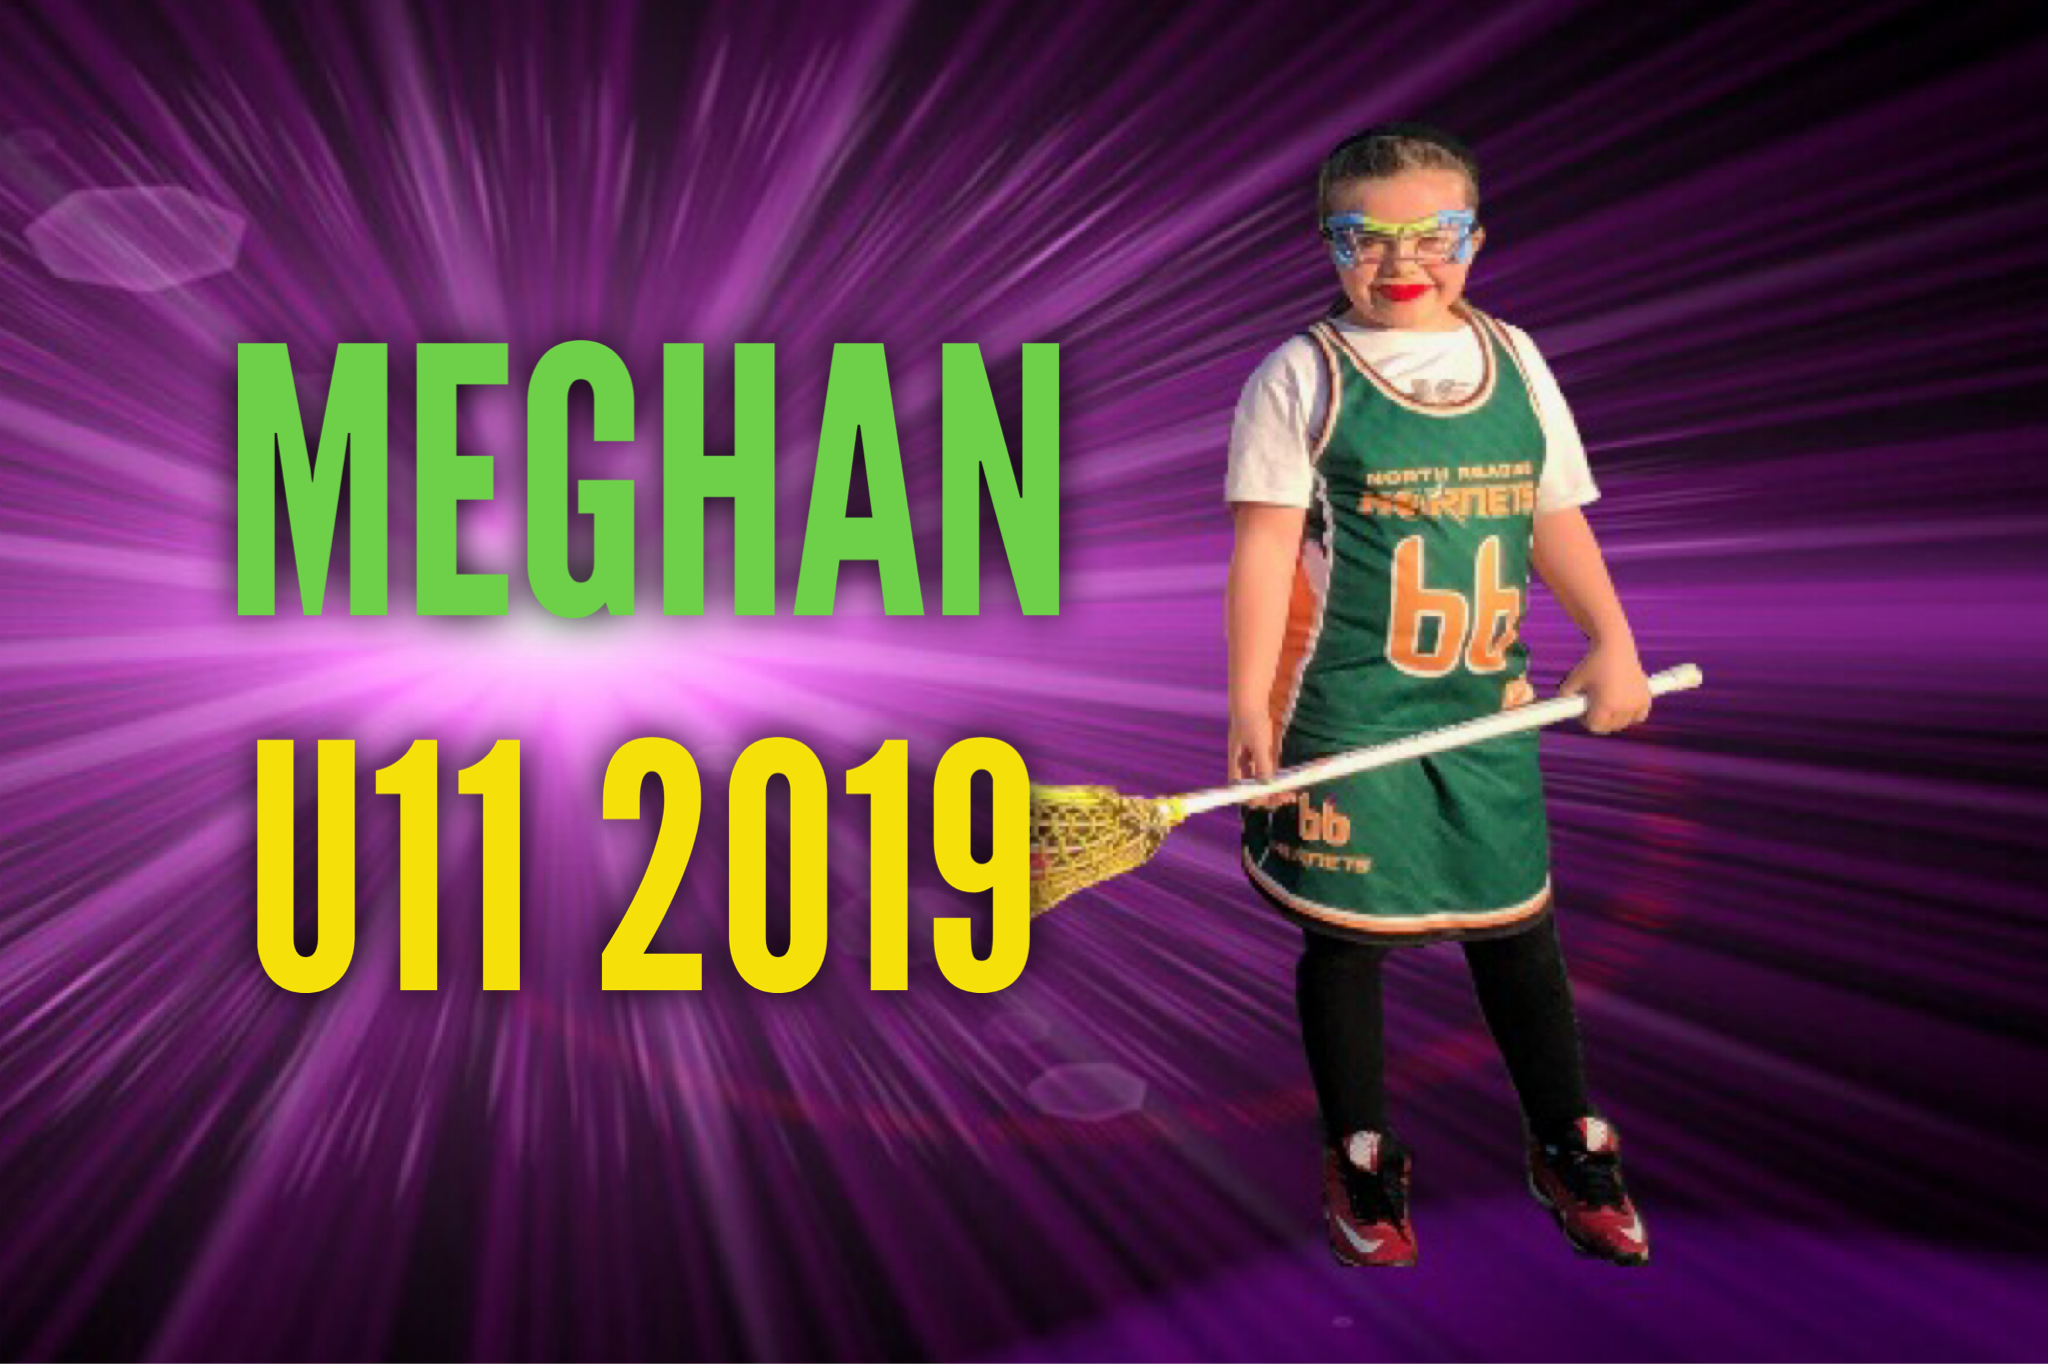 Add Sports Themed Effects To Your Lacrosse Photo